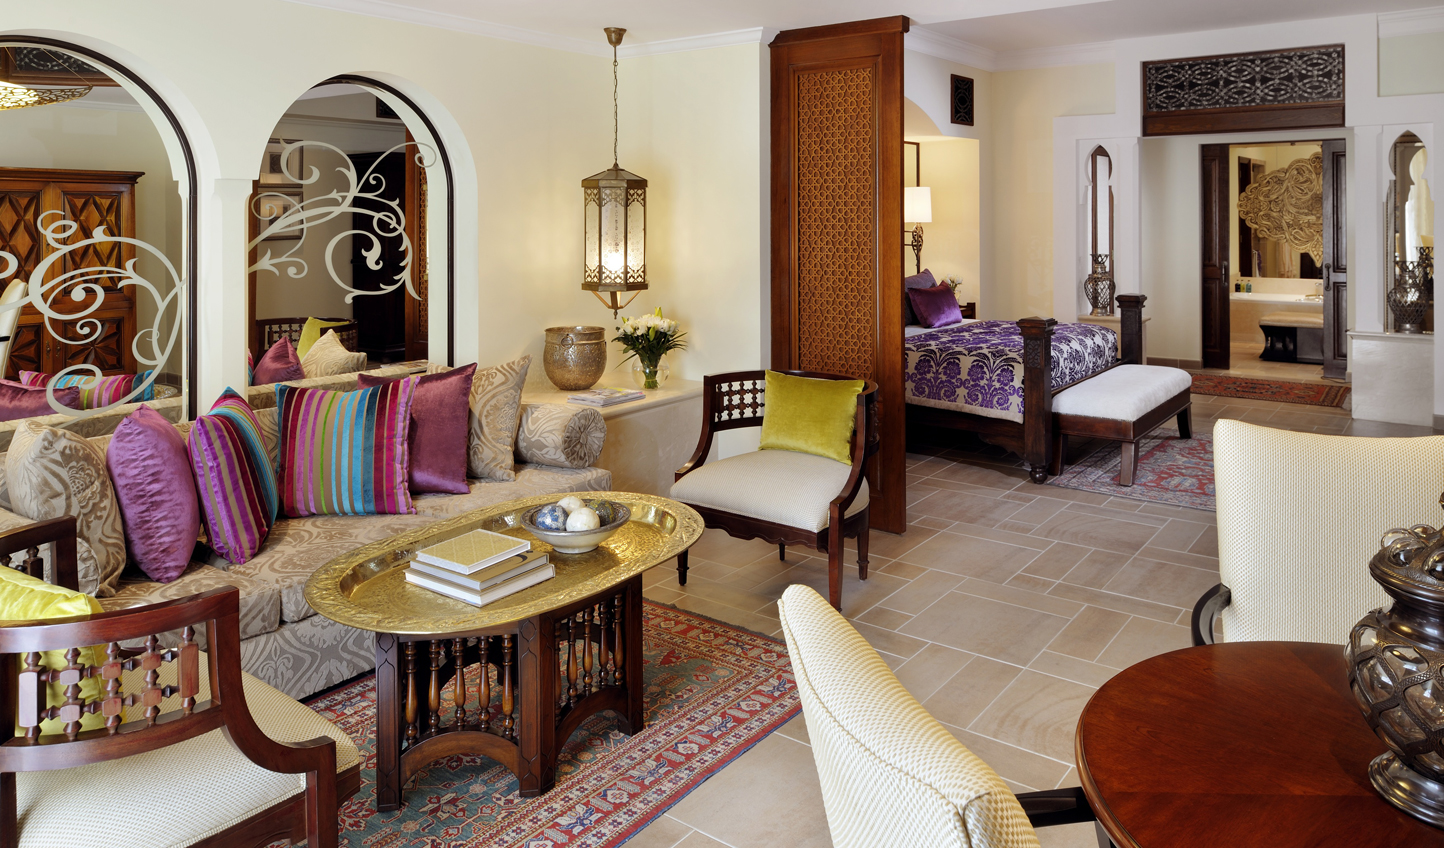 Rich and intricate furnishings reflect the warmth of the Orient